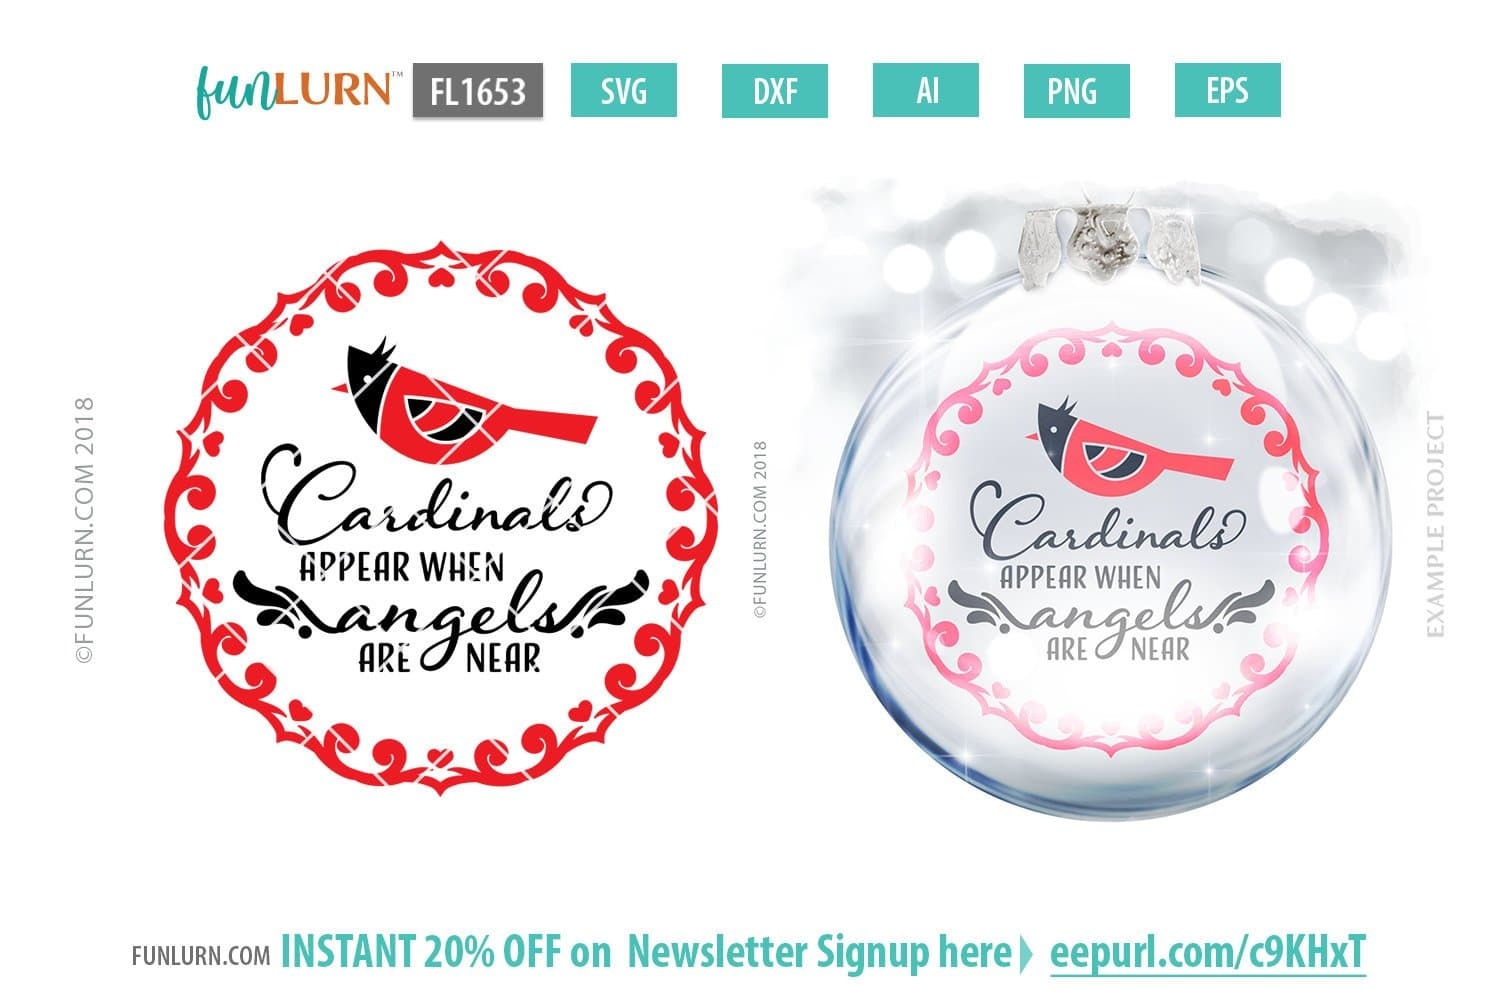 Merry Christmas Ornament Svg.Charming Ornaments Collection Svg Bundle